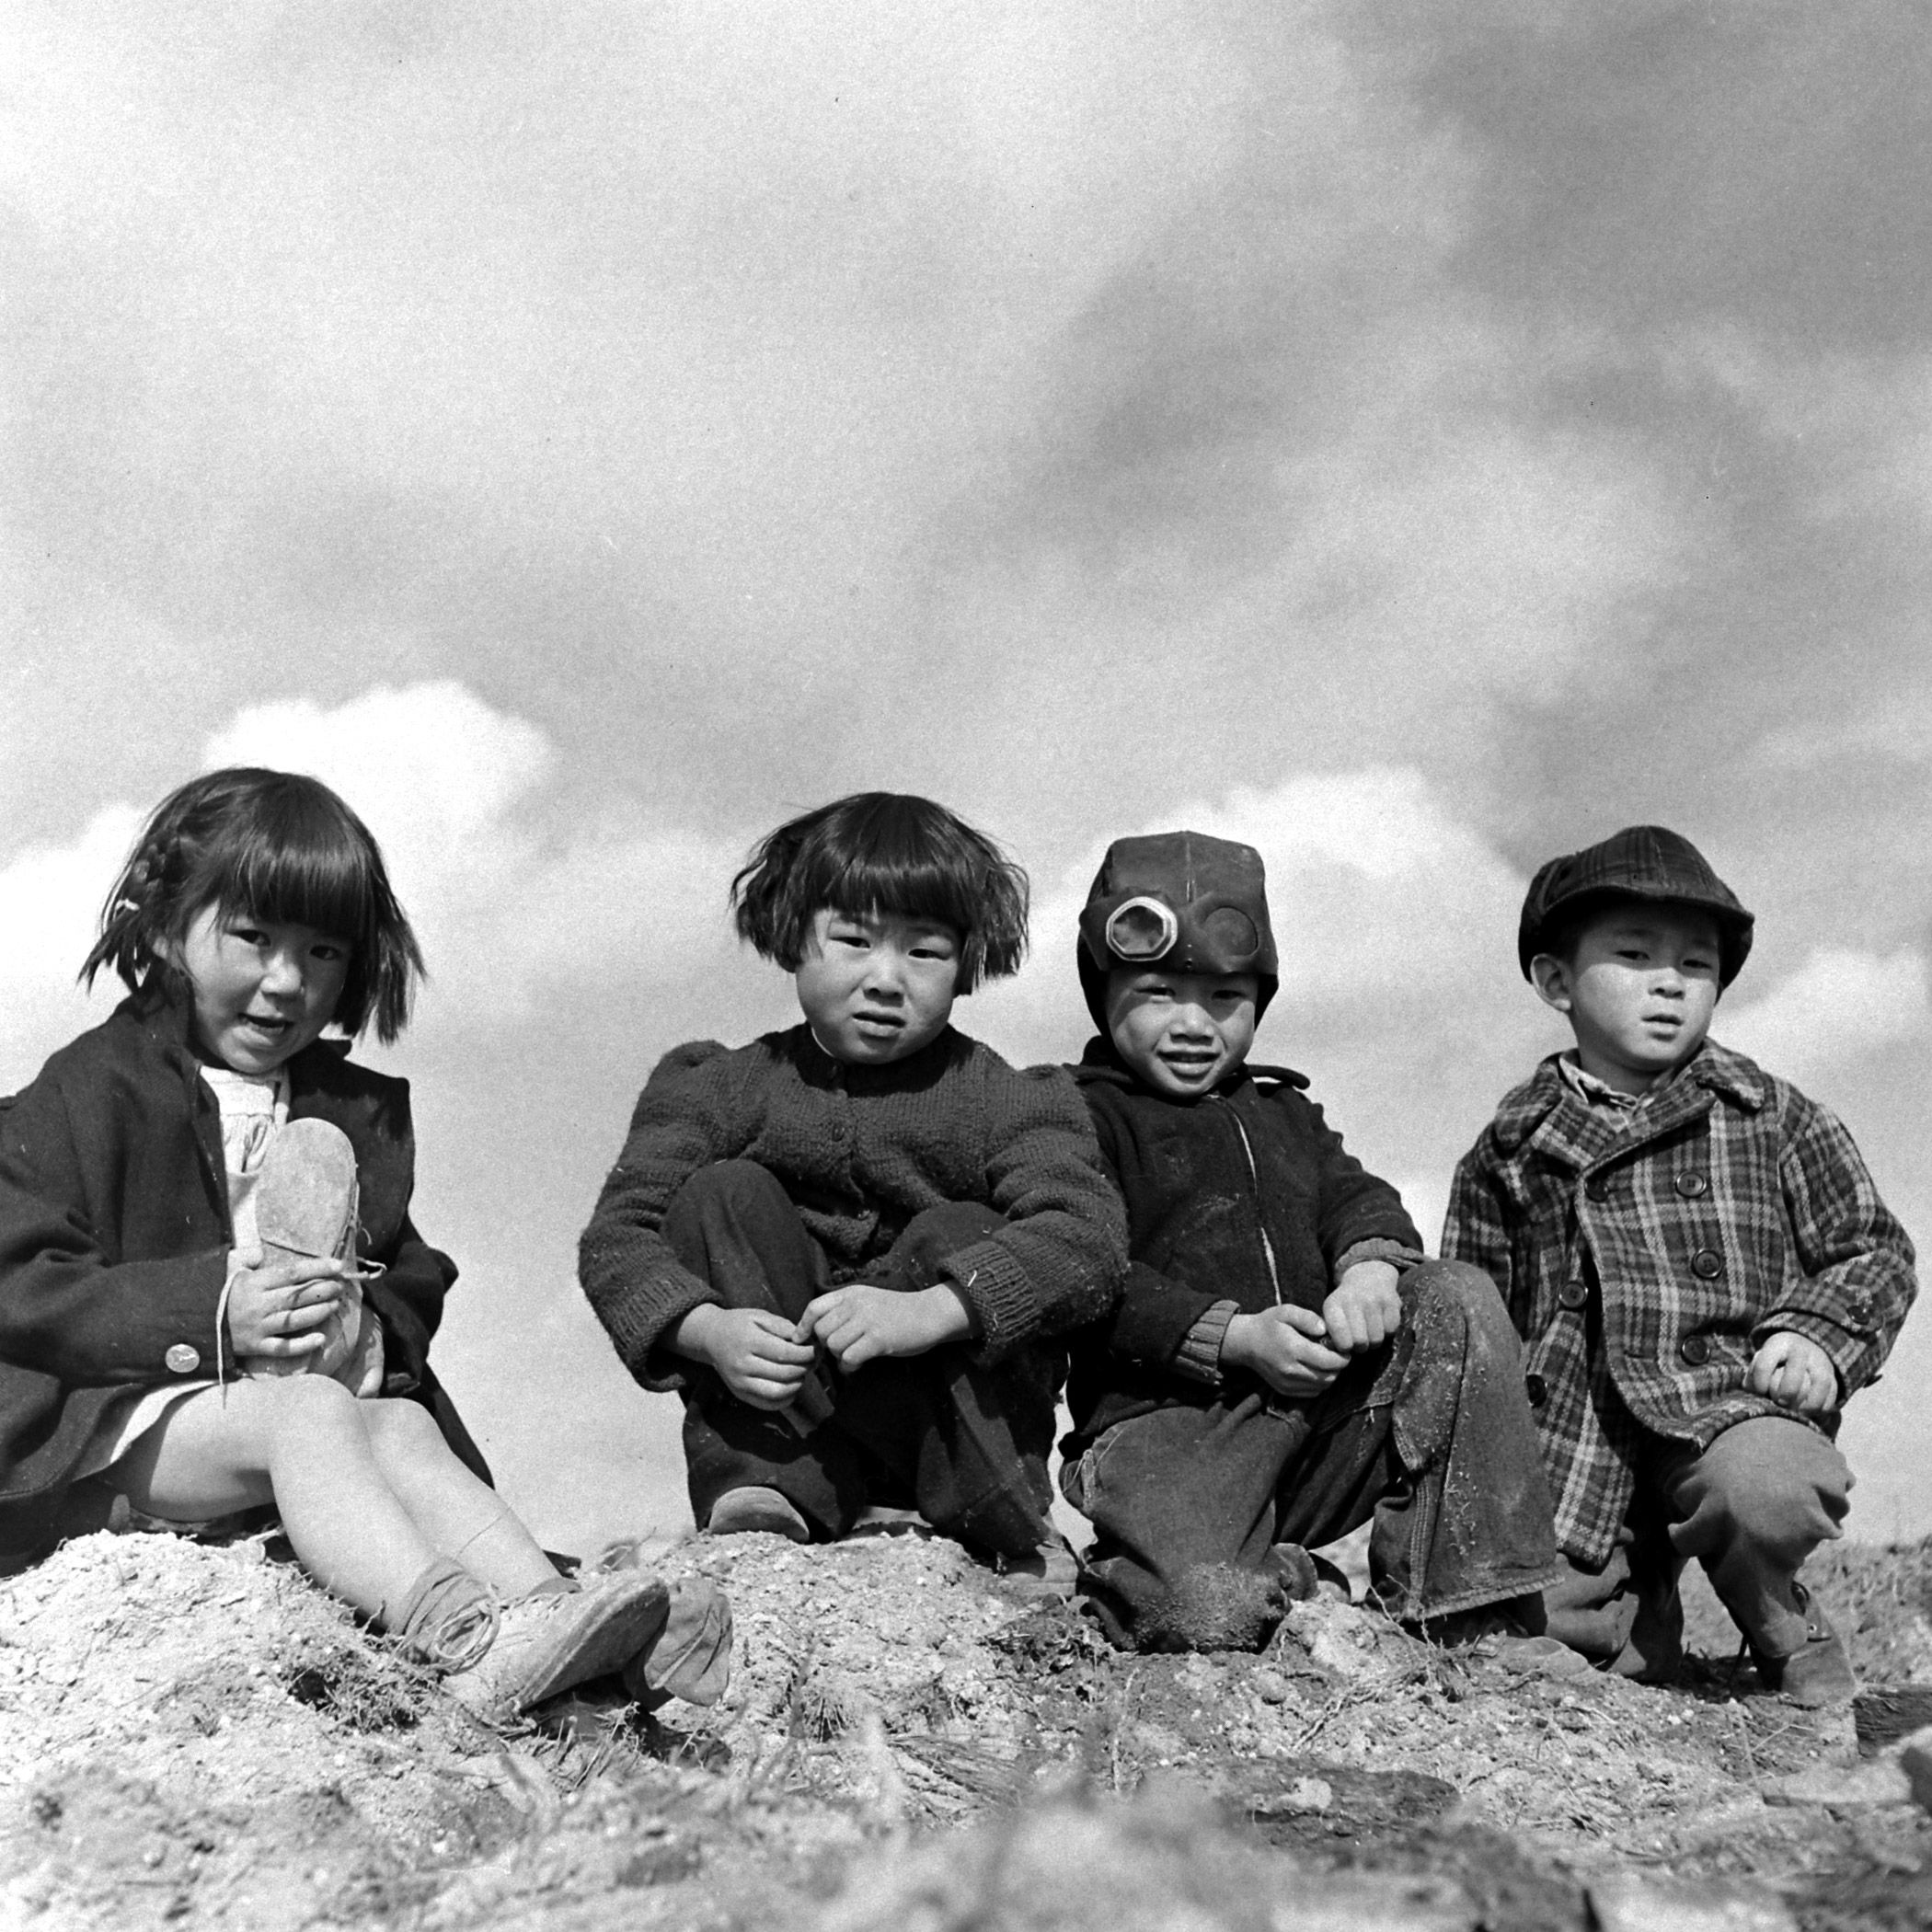 Family Separation Compared To Japanese Internment